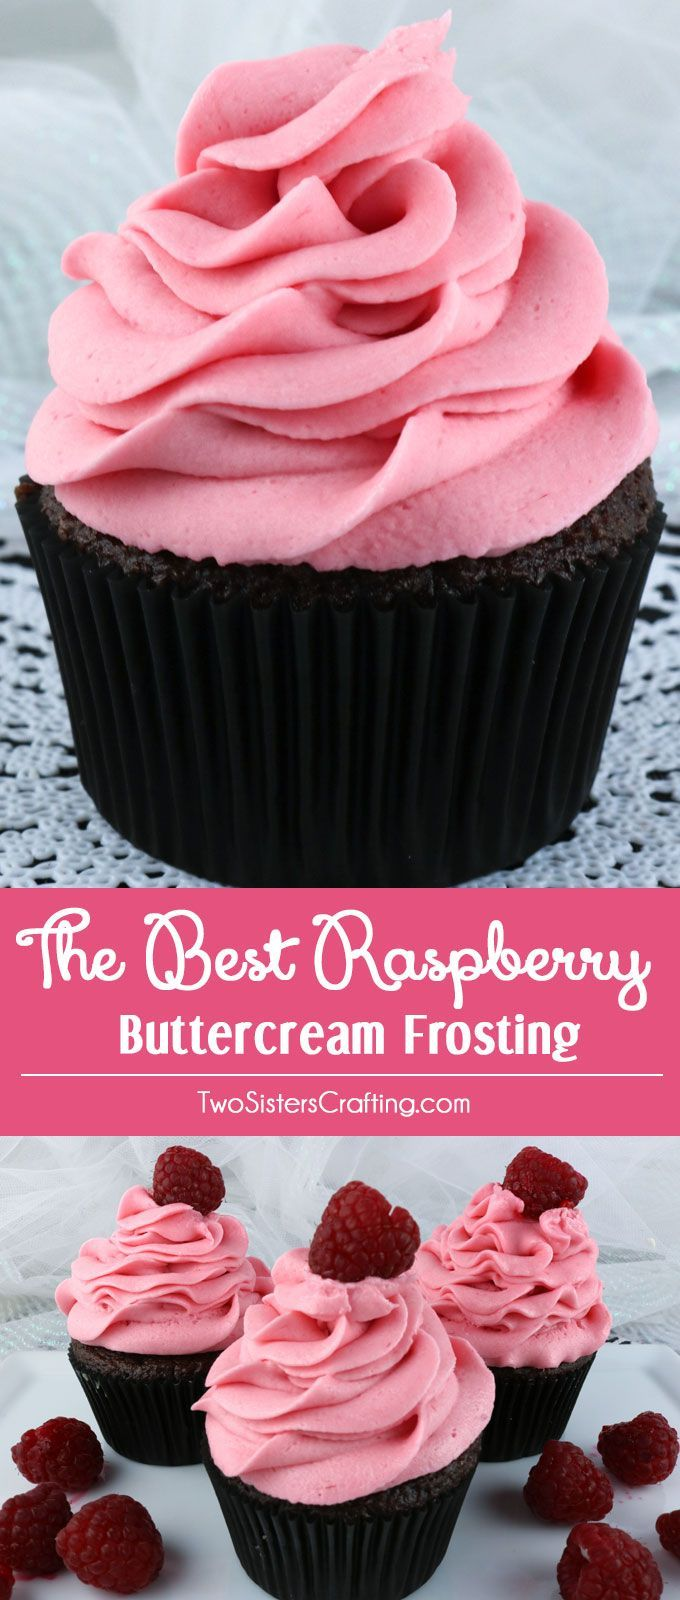 The Best Raspberry Buttercream Frosting - our delicious buttercream frosting flavored with deliciously fresh Raspberries.   Light and fresh with just a hint of tart, this yummy homemade butter cream frosting will take whatever you are baking to the next level, we promise!  Pin this tasty Raspberry Frosting for later and follow us for more great Frosting Recipes!